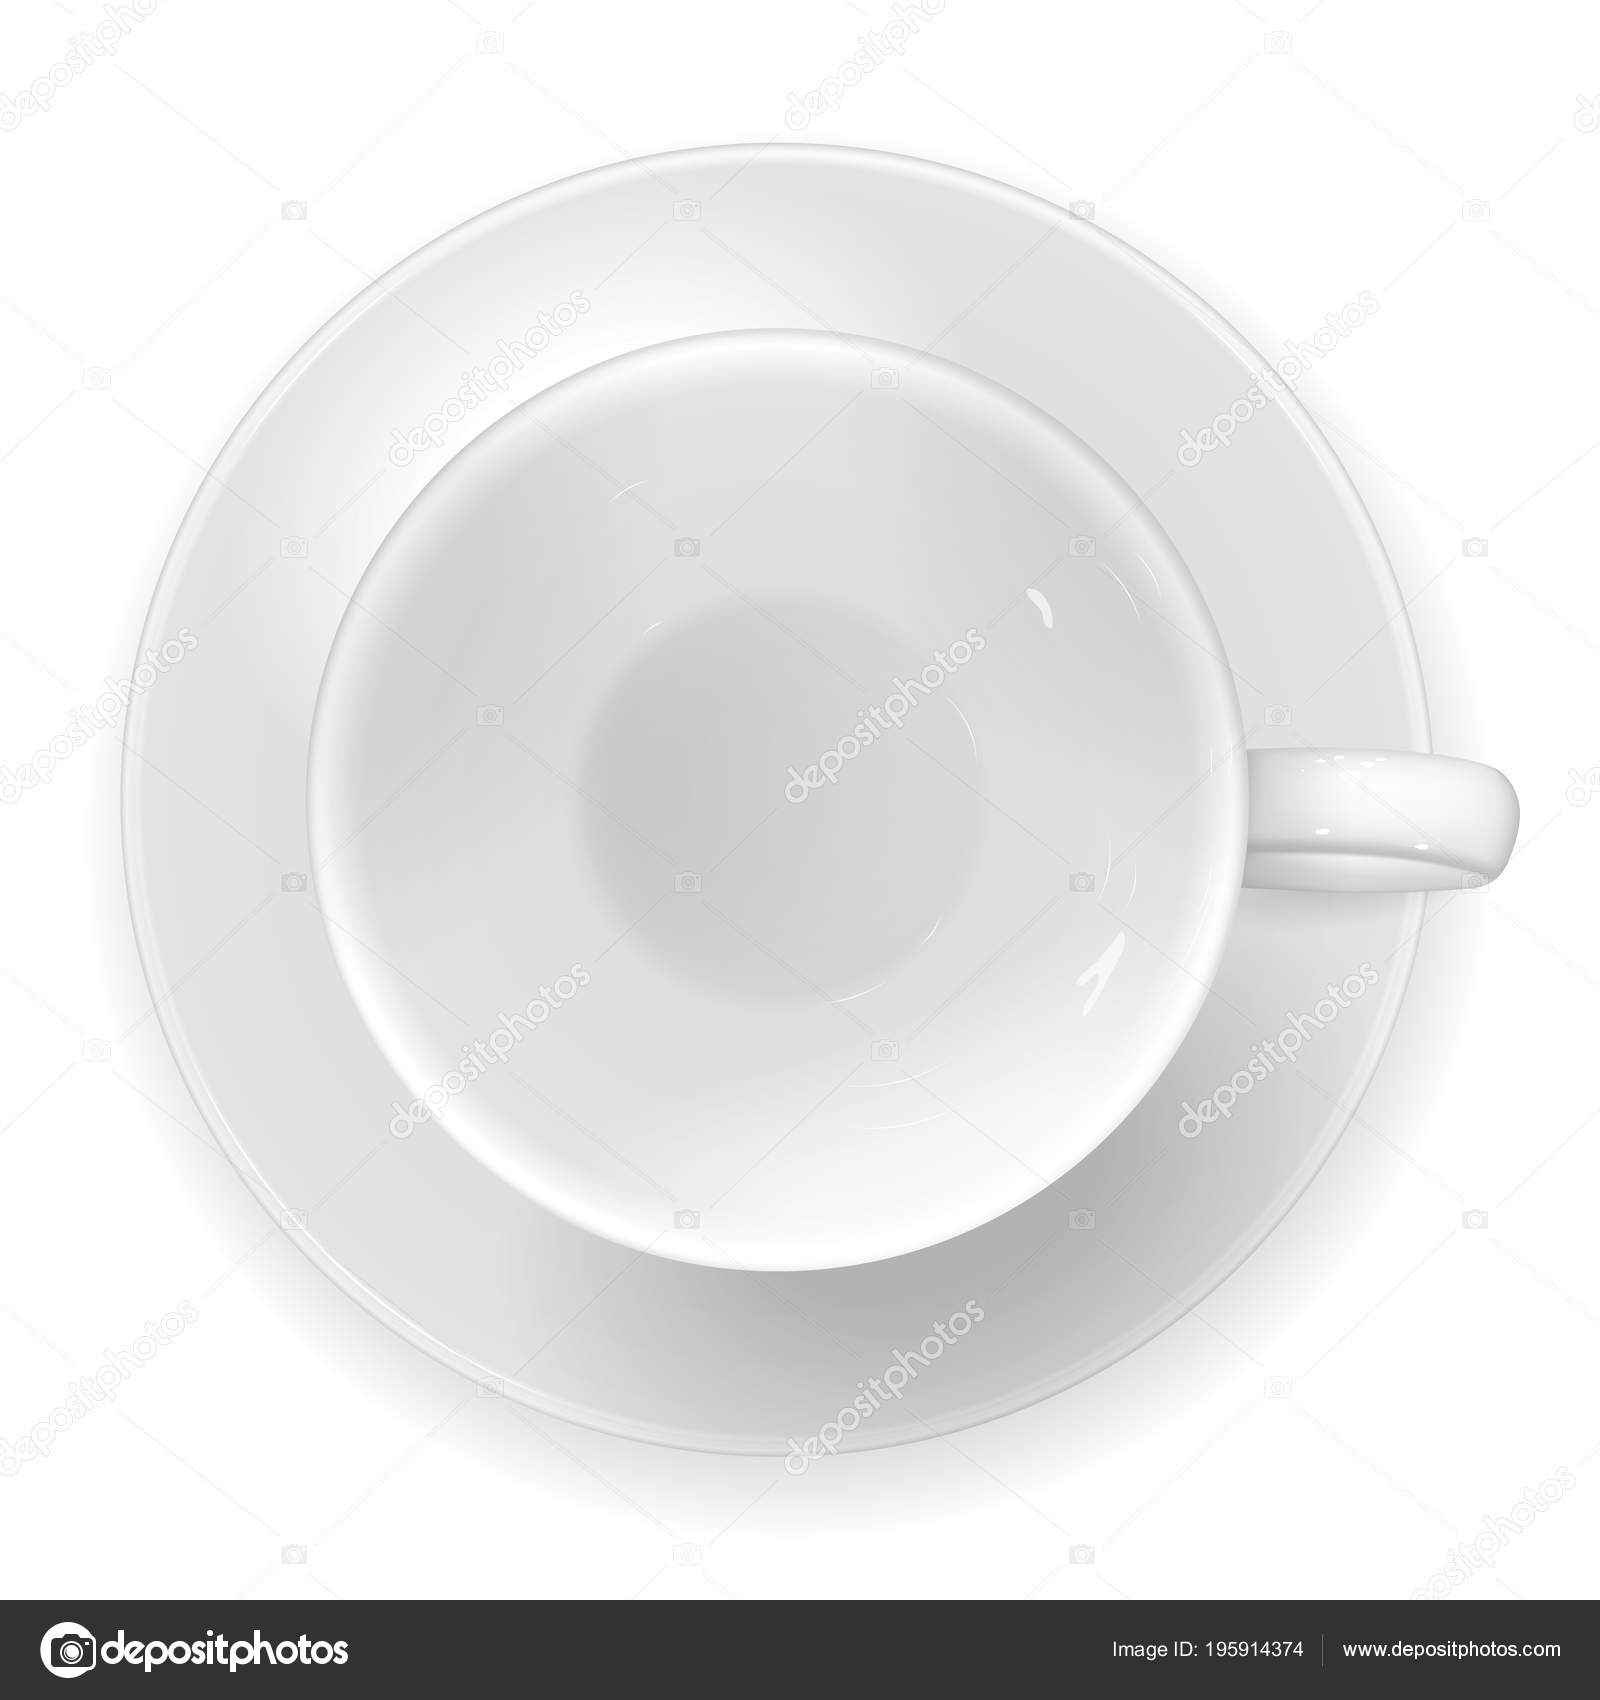 Vector Realistic Image White Porcelain Cup Saucer Top View Empty Vector Image By C Natalia5988 Vector Stock 195914374